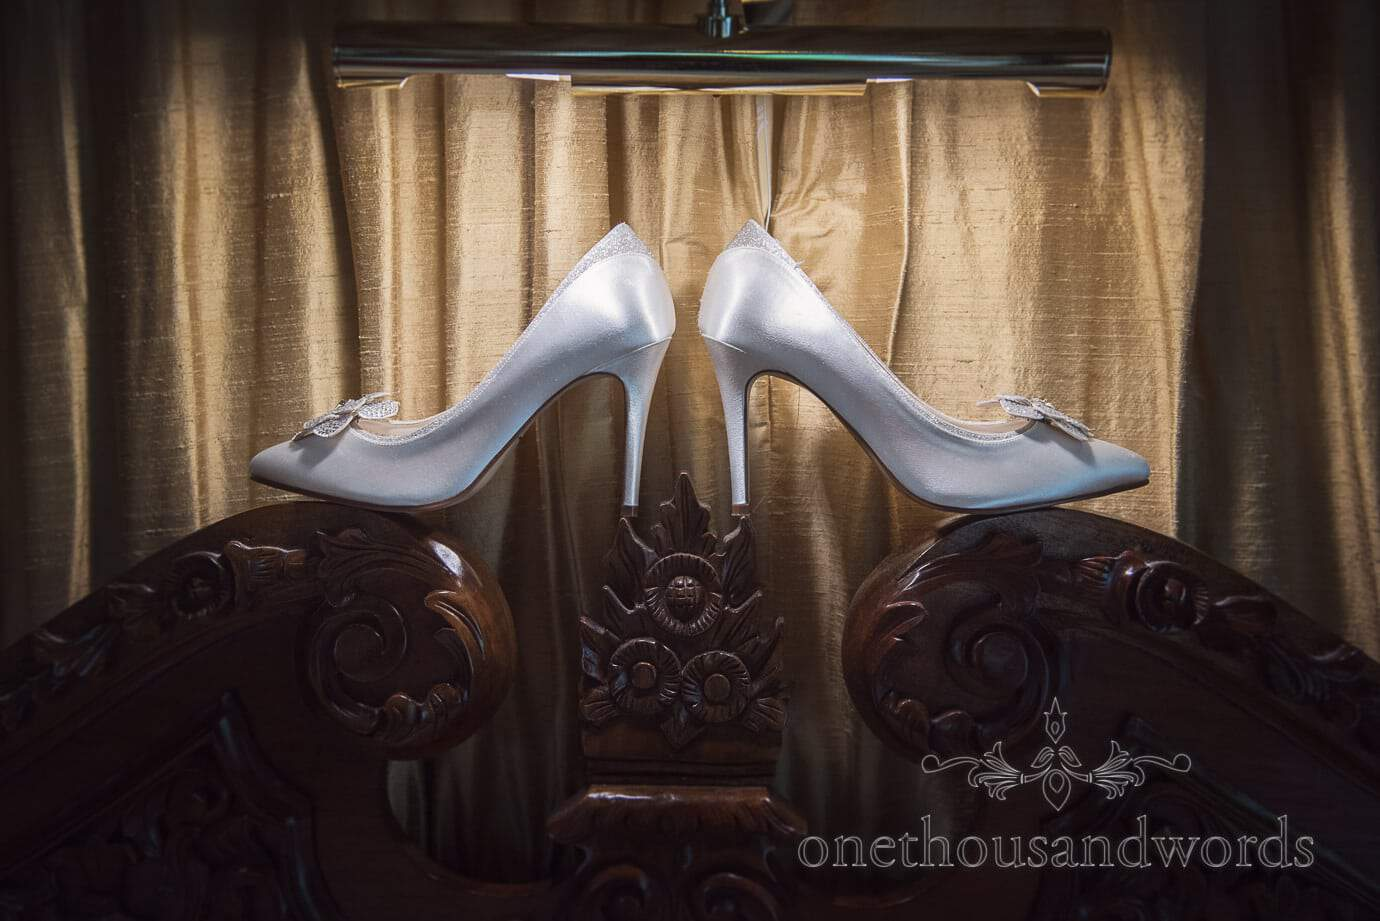 White satin wedding shoes with gold curtains on ornate wooden headboard under reading light